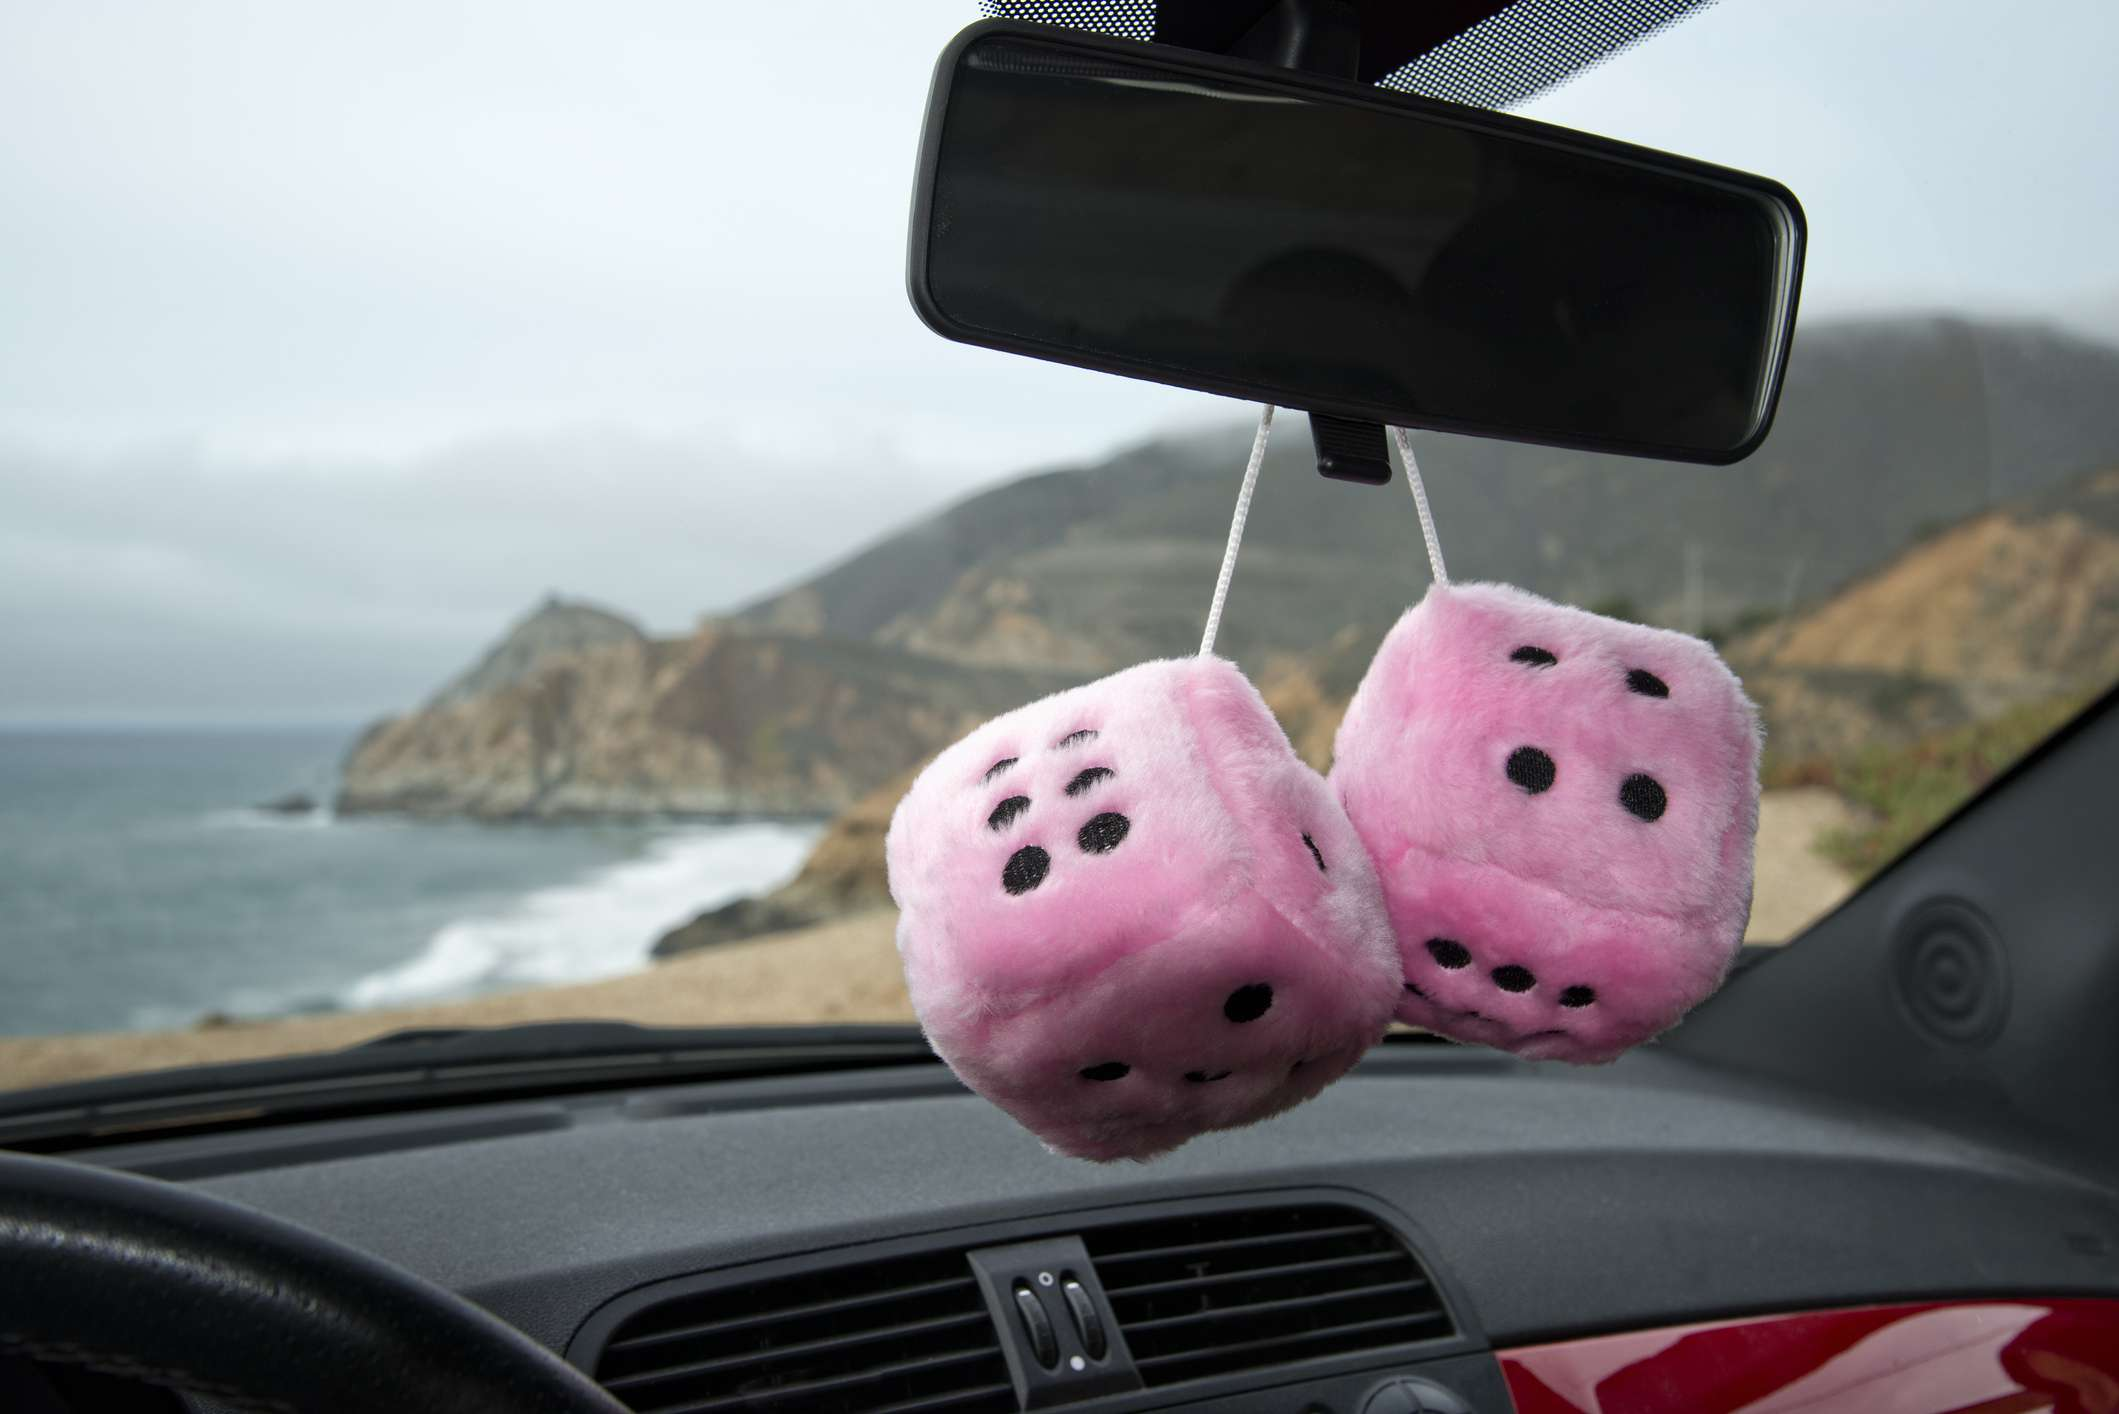 Pink fuzzy dice hanging from the rear-view mirror of a car